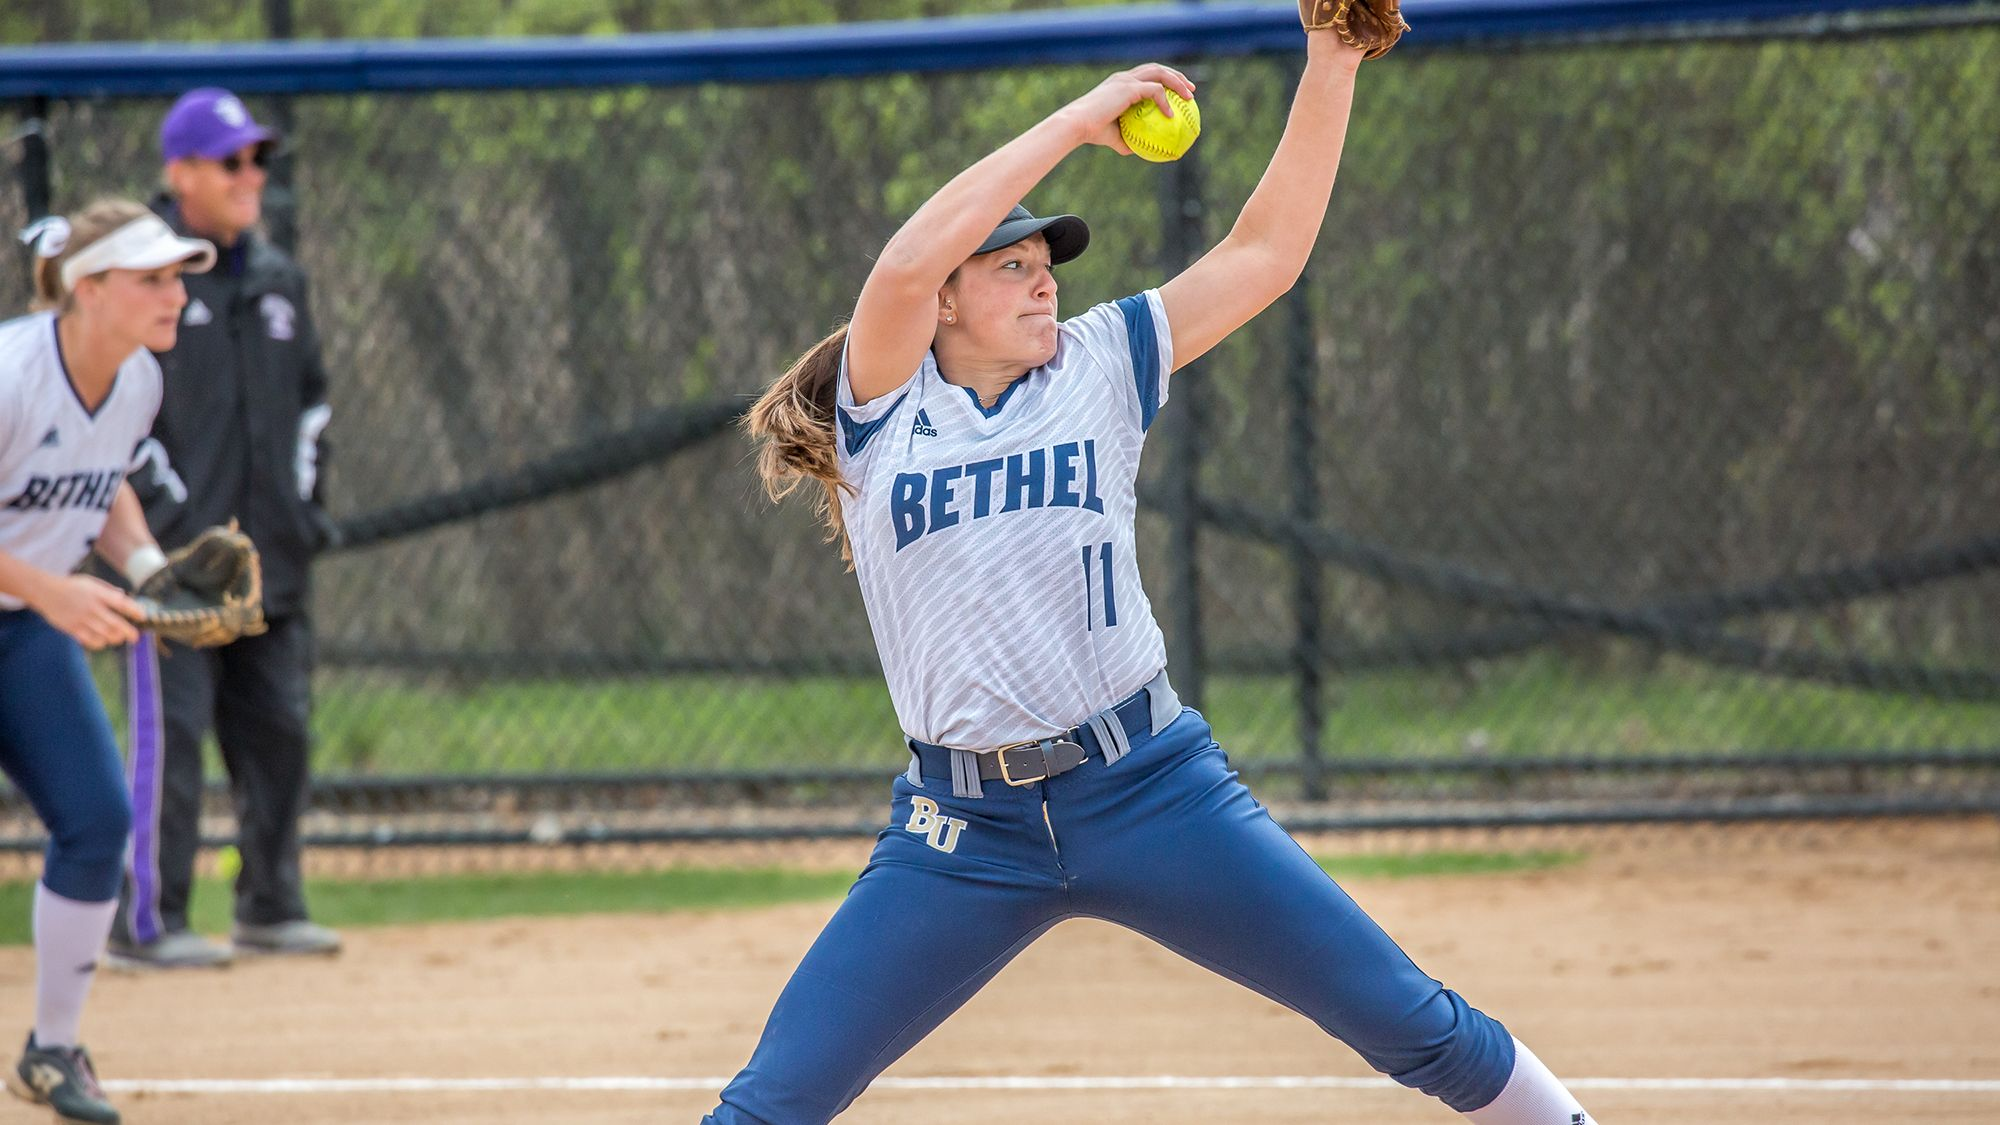 Bethel University S Softball Program Is Excited To Welcome Five Professional Players From The National Pro Fastpi Softball Camp Girls Softball Softball Mom